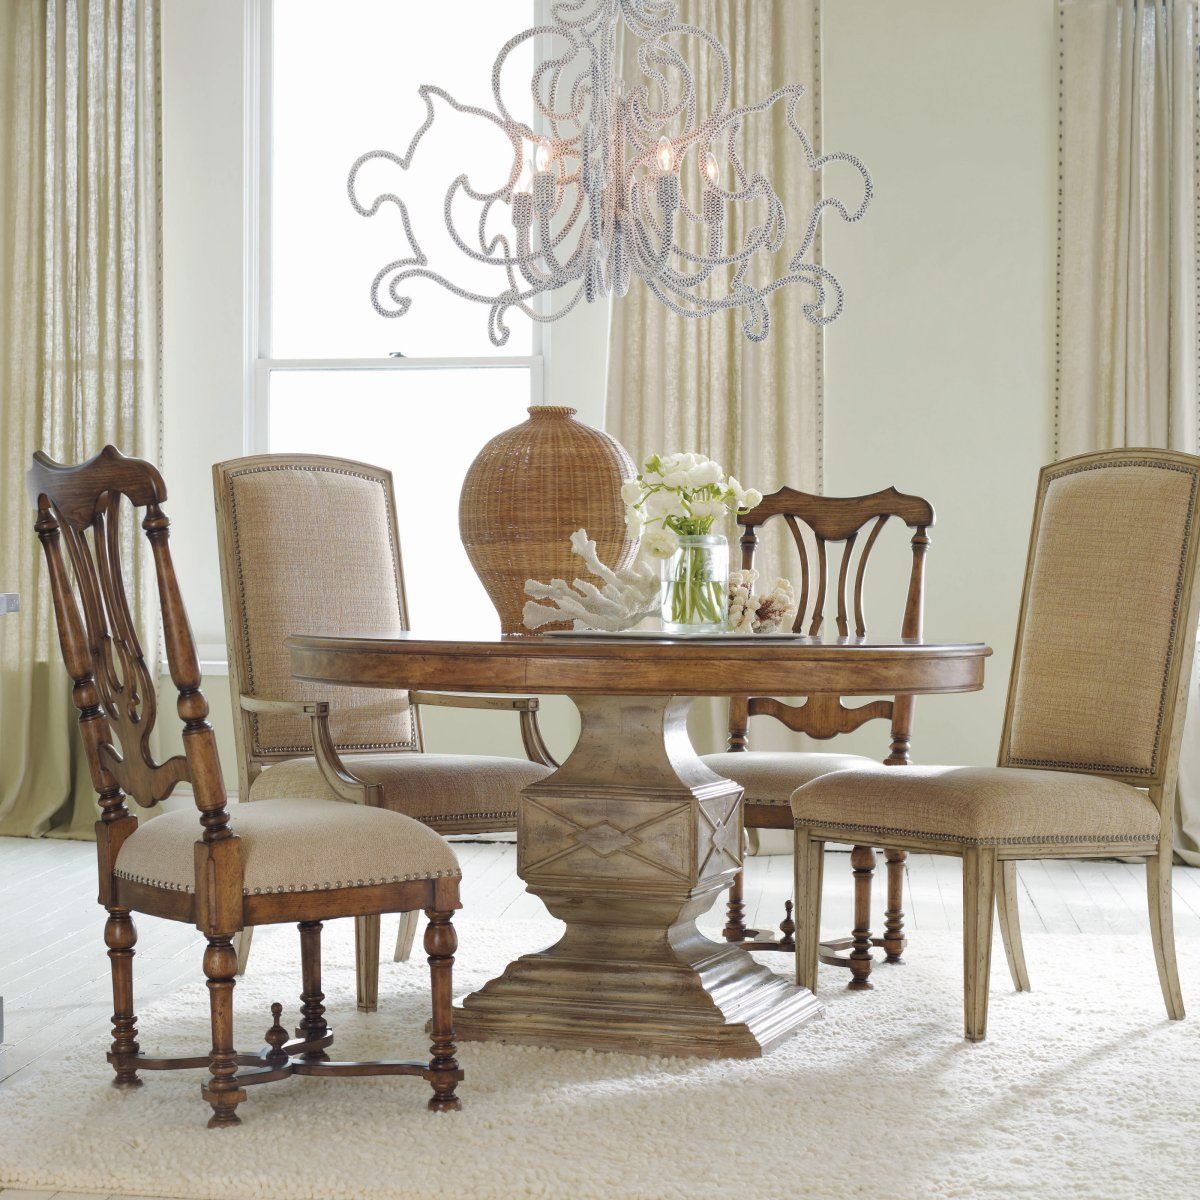 Mix And Match Chairs For A Classical Timeless Look Home Is Pleasing Circular Dining Room Table Decorating Inspiration